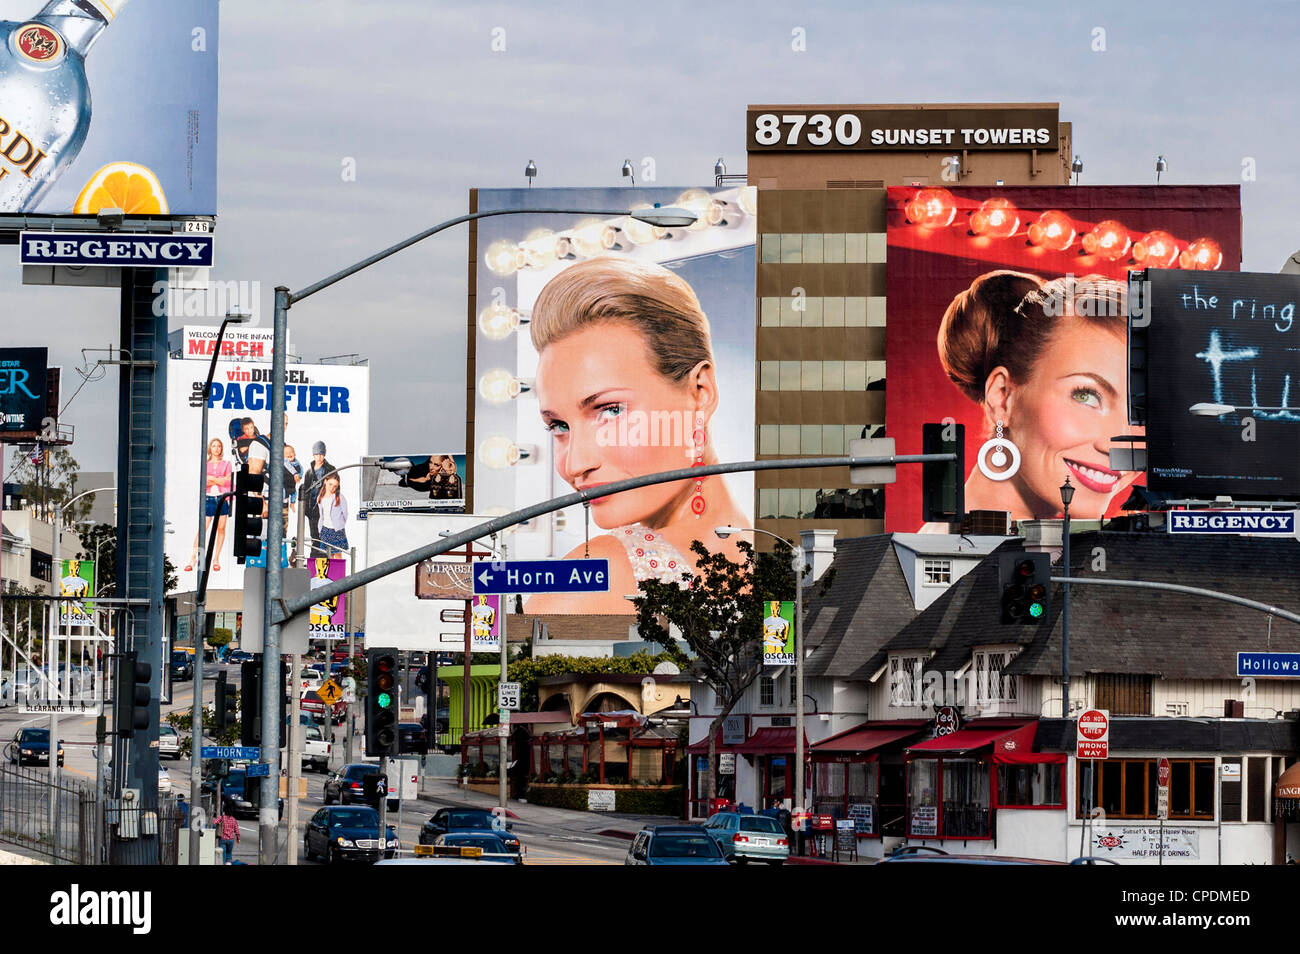 Sunset Boulevard - Giant advertising billboards over the street, Los Angeles, California, USA - Stock Image